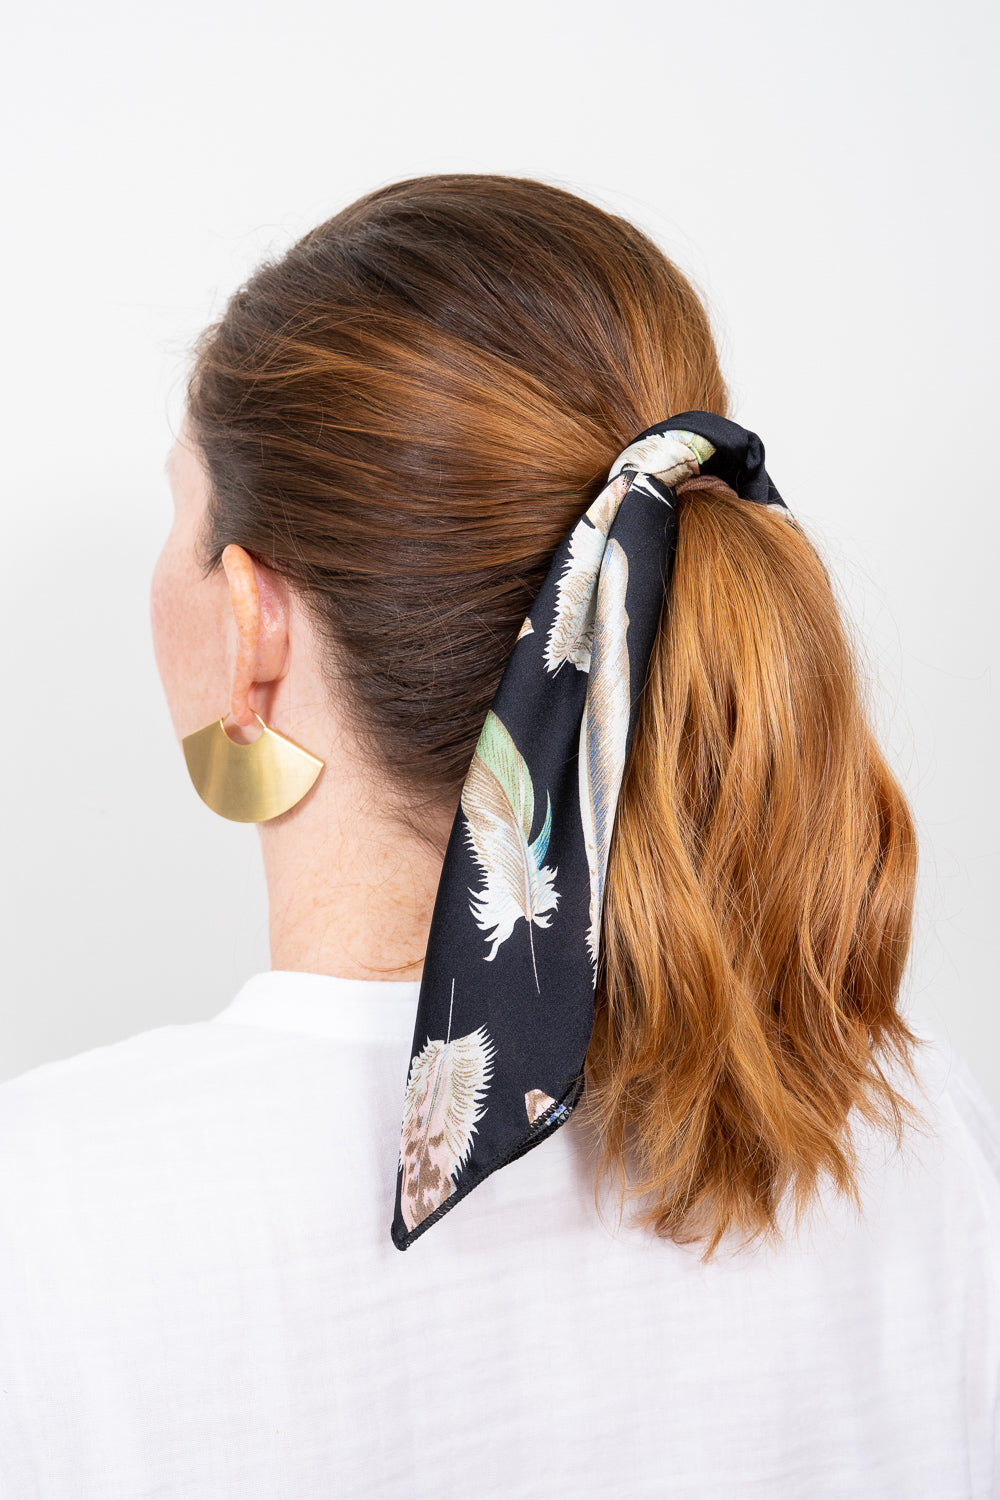 red head with black print scarf tied in hair ponytail gold hoop earrings Janna Conne